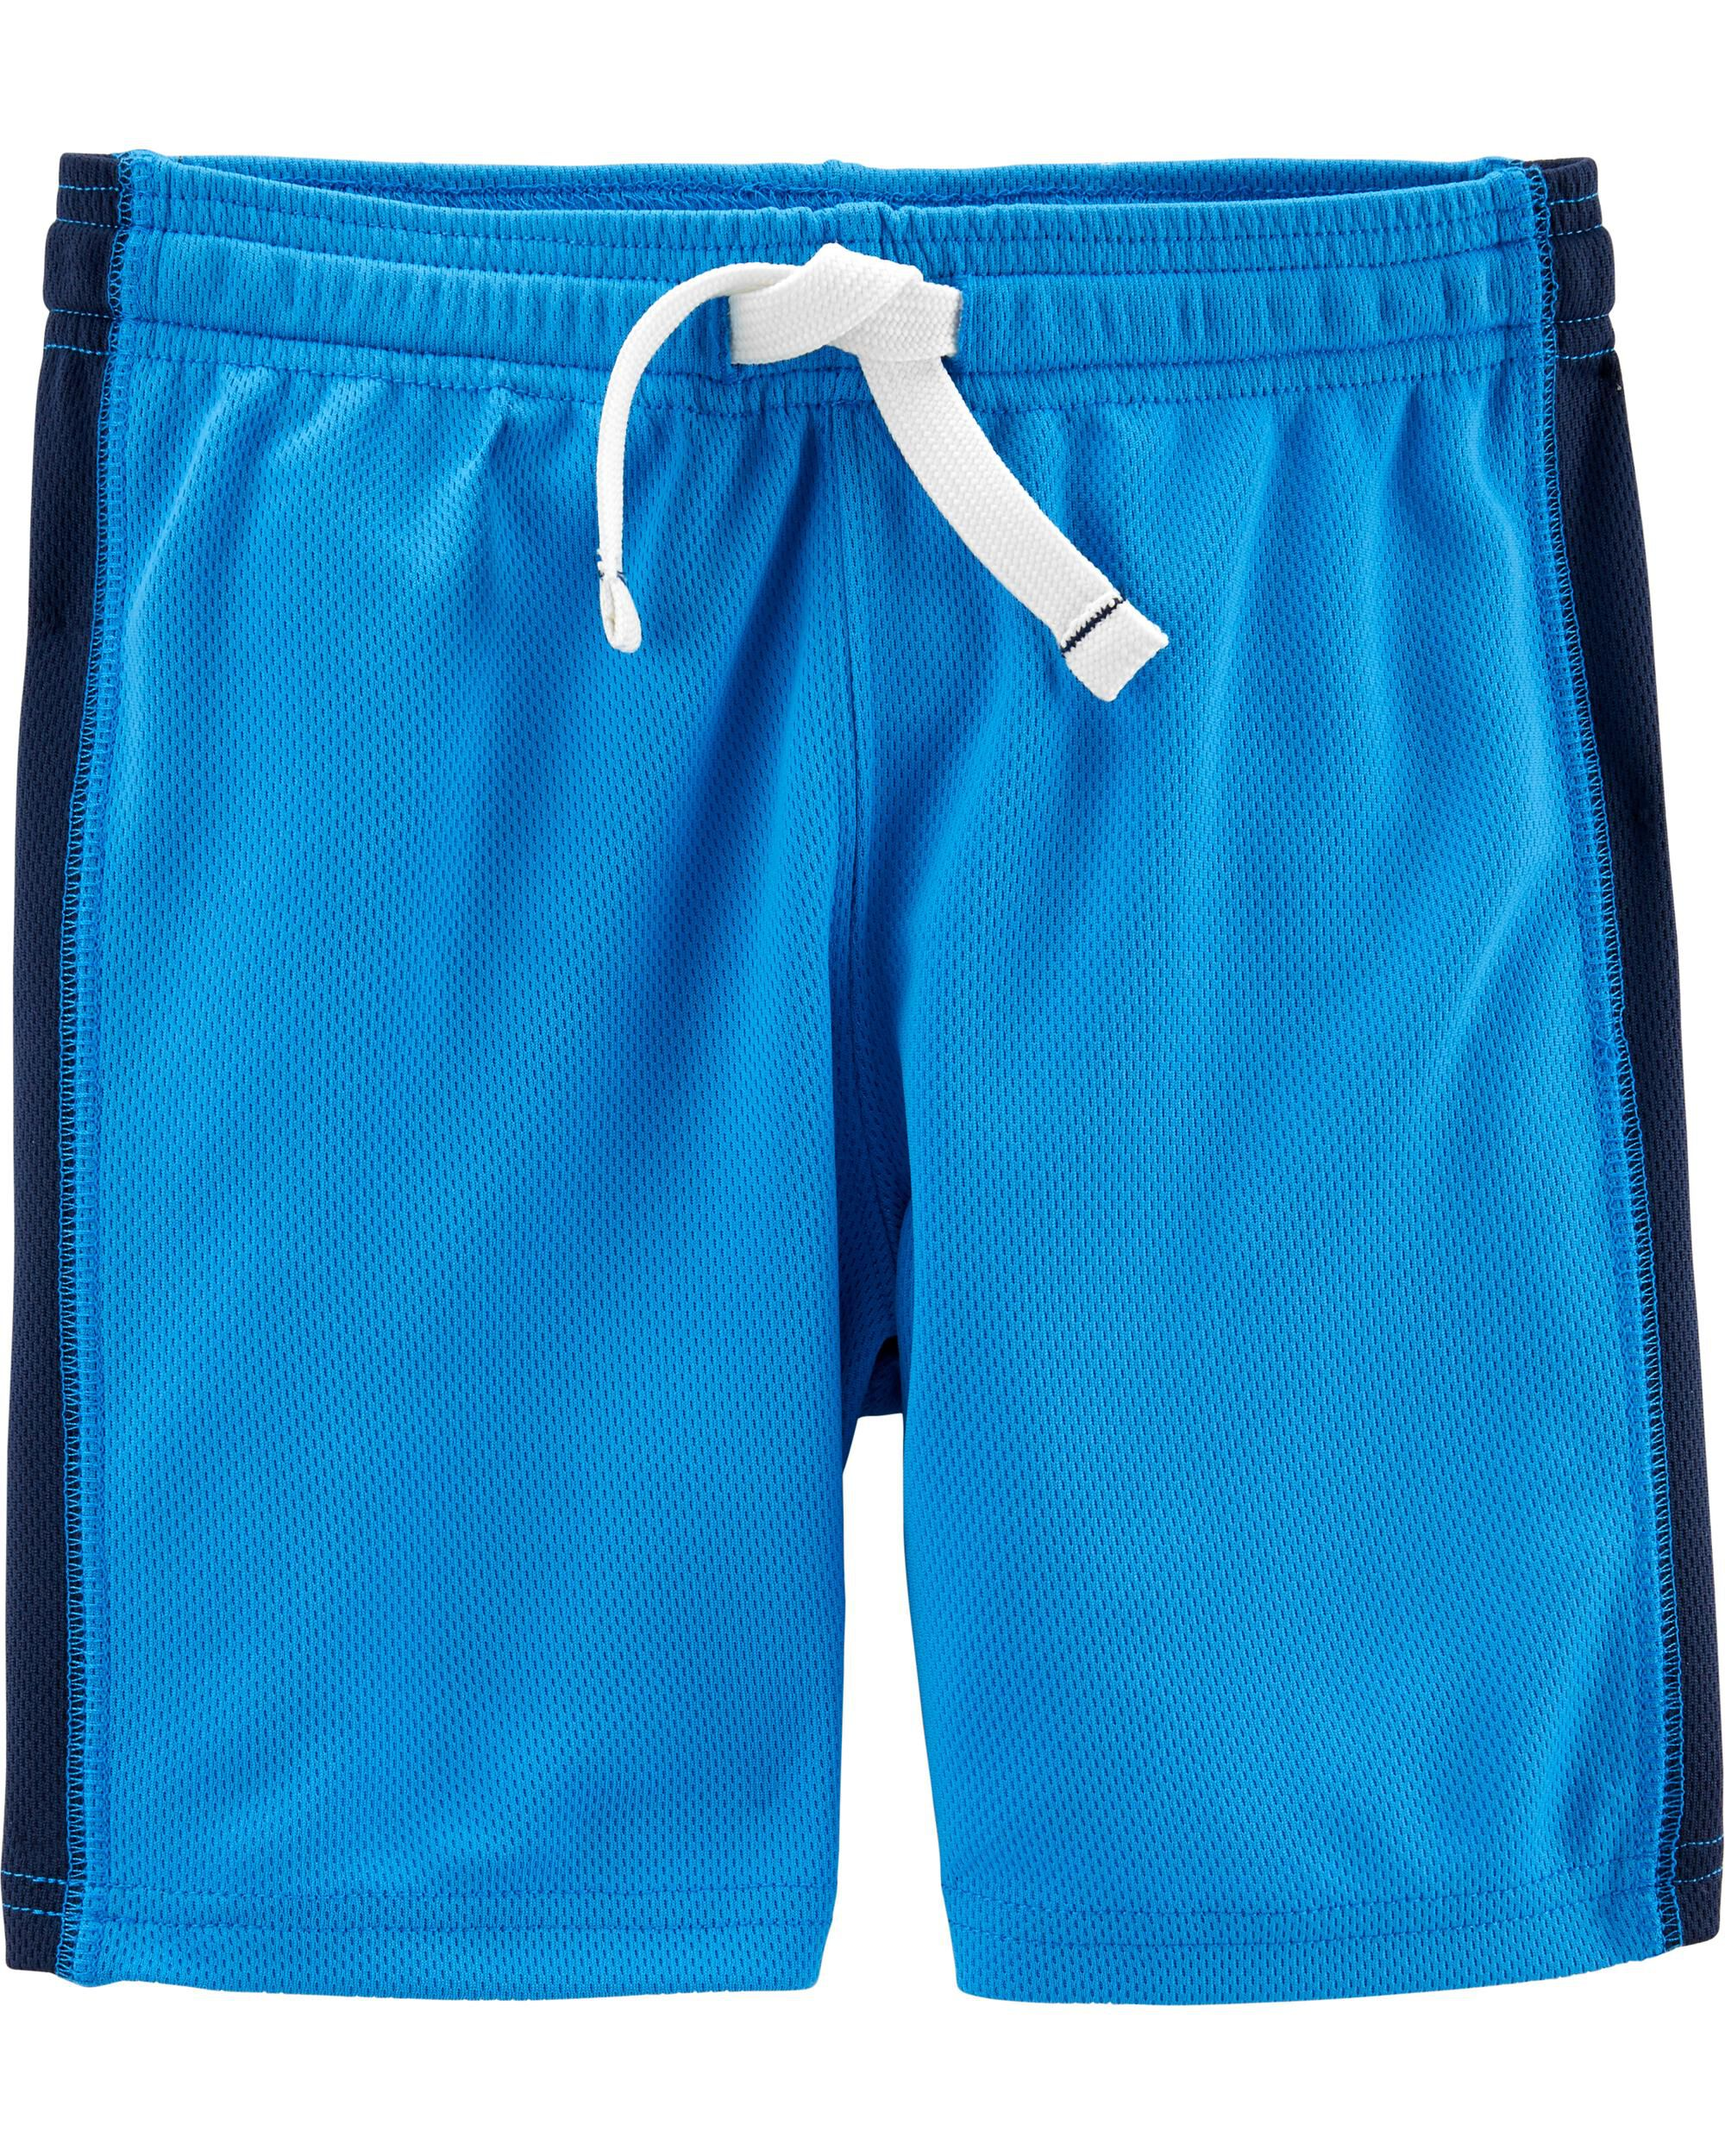 Carters Baby Boy Rash Guard Swimsuit Trunks Set Nautical Blue Size 3 6 9 Months